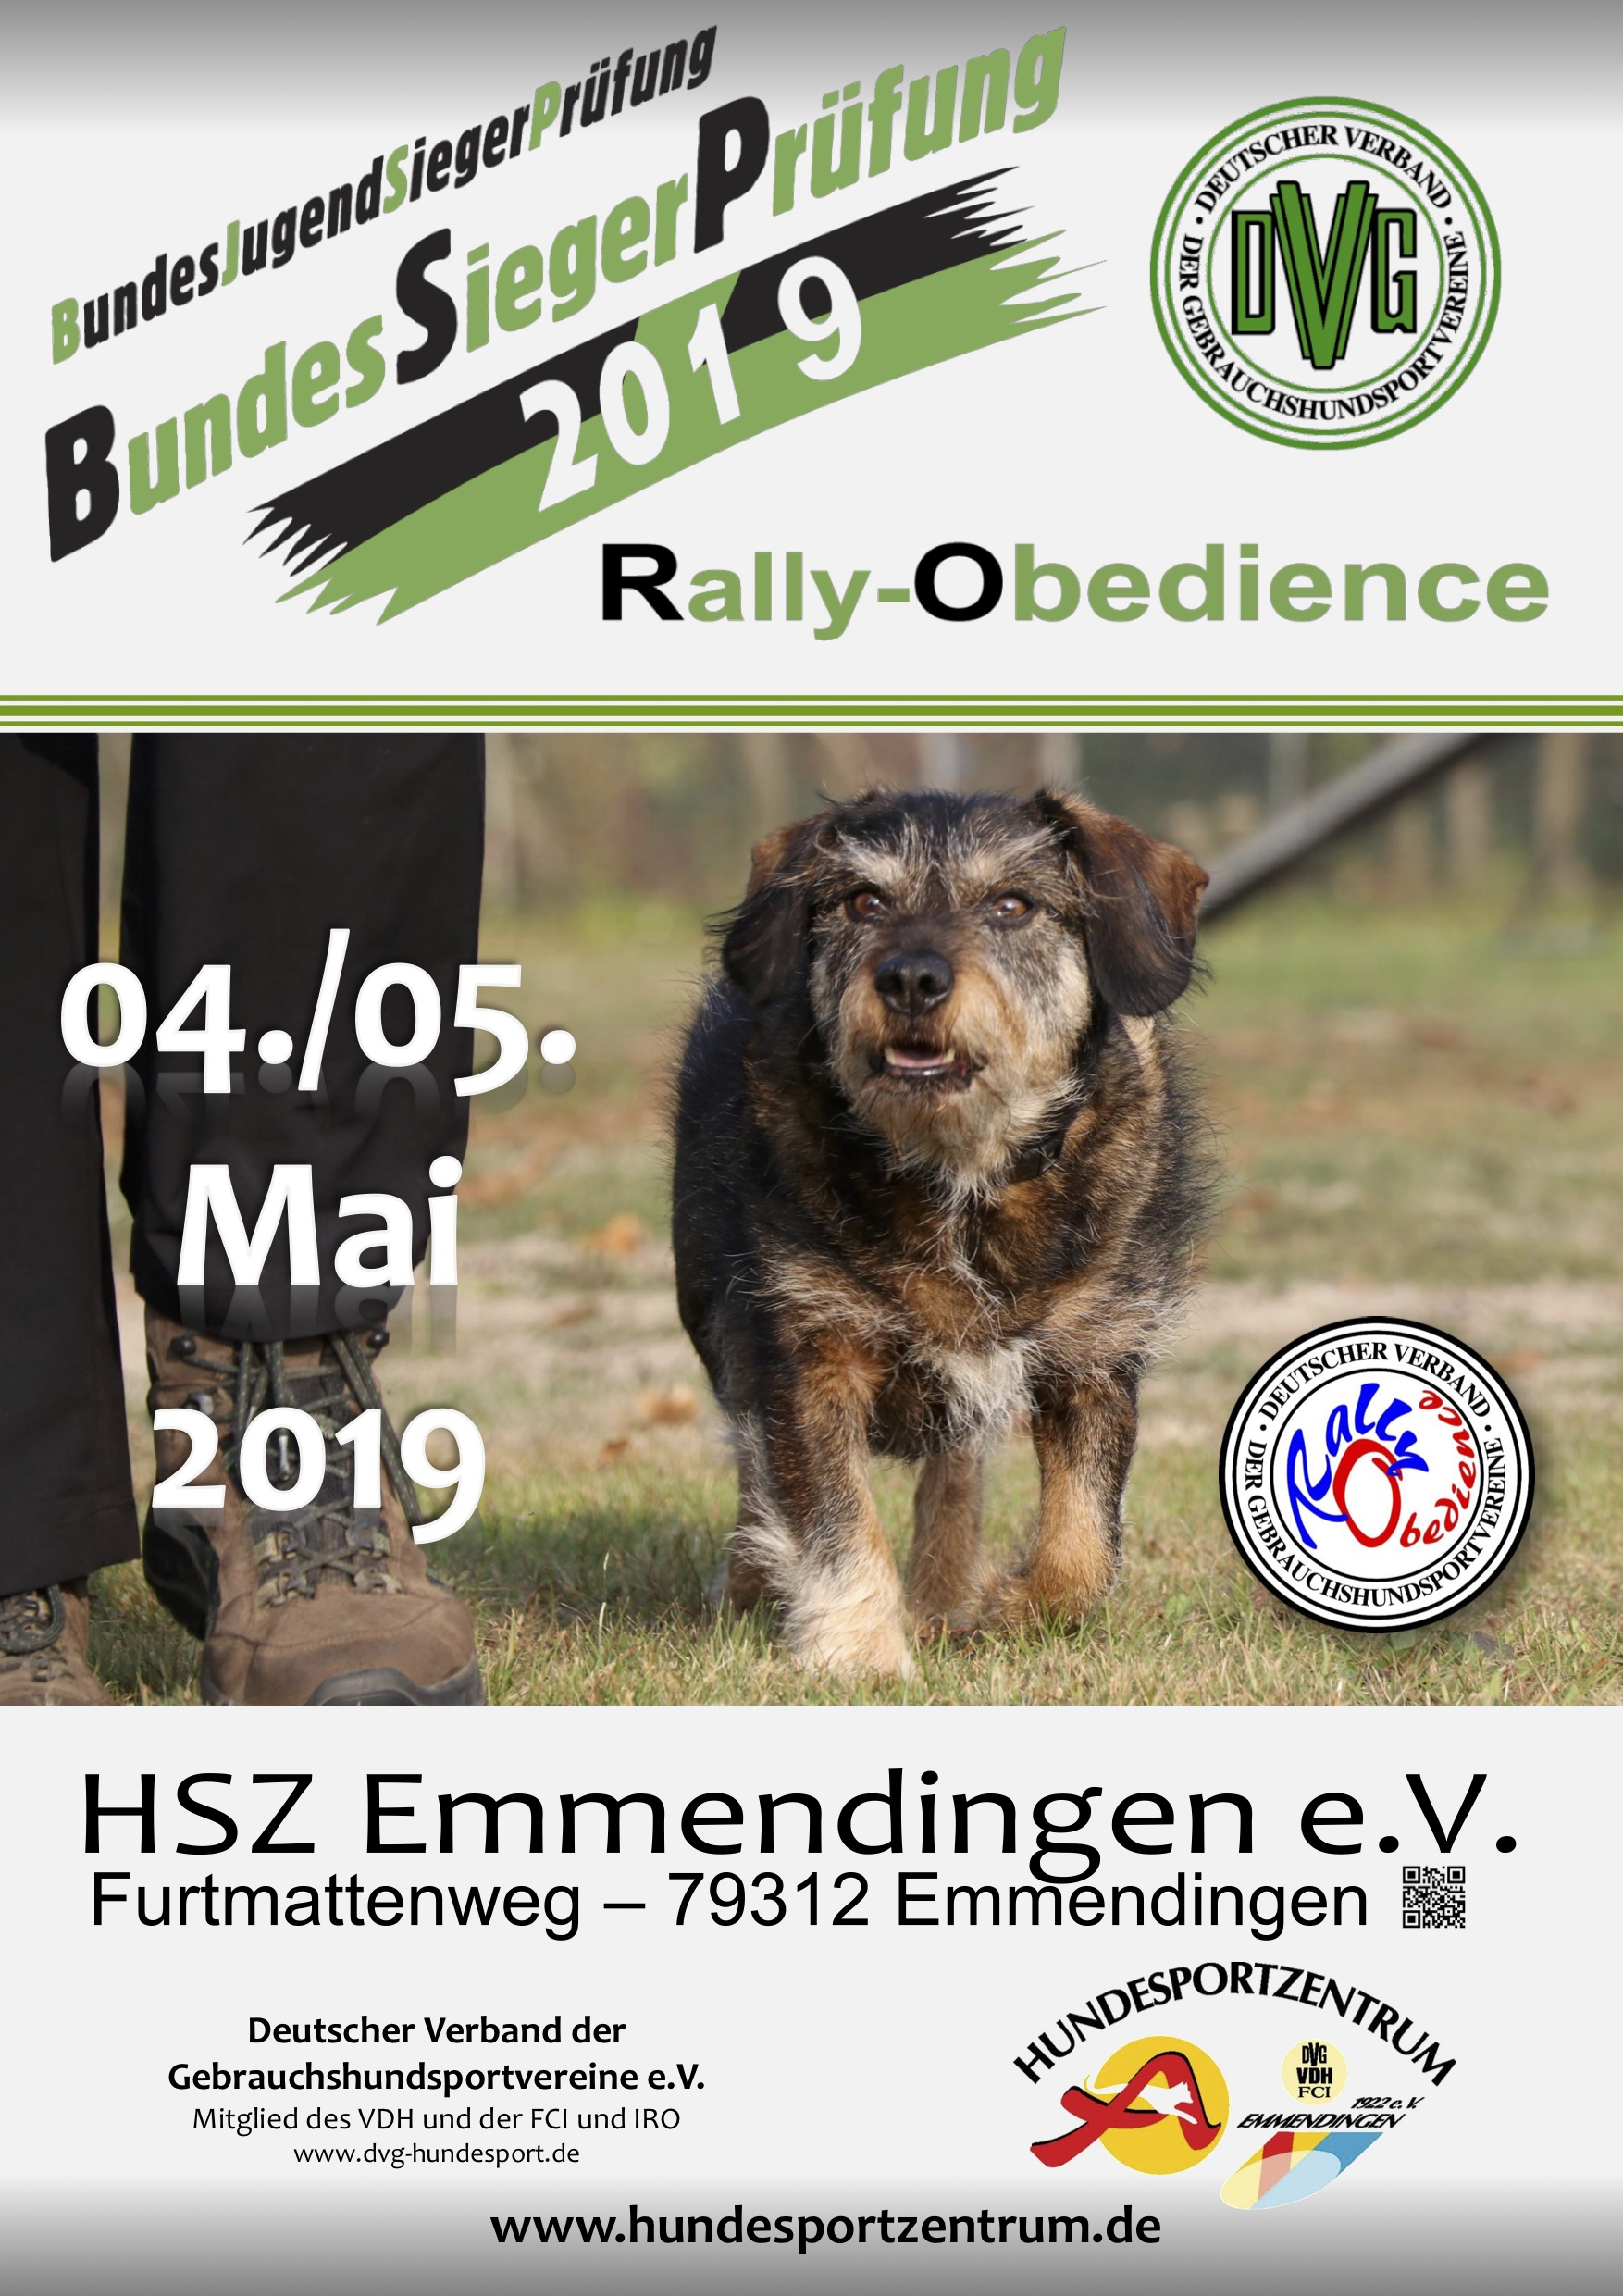 DVG BSP/BJSP Rally Obedience